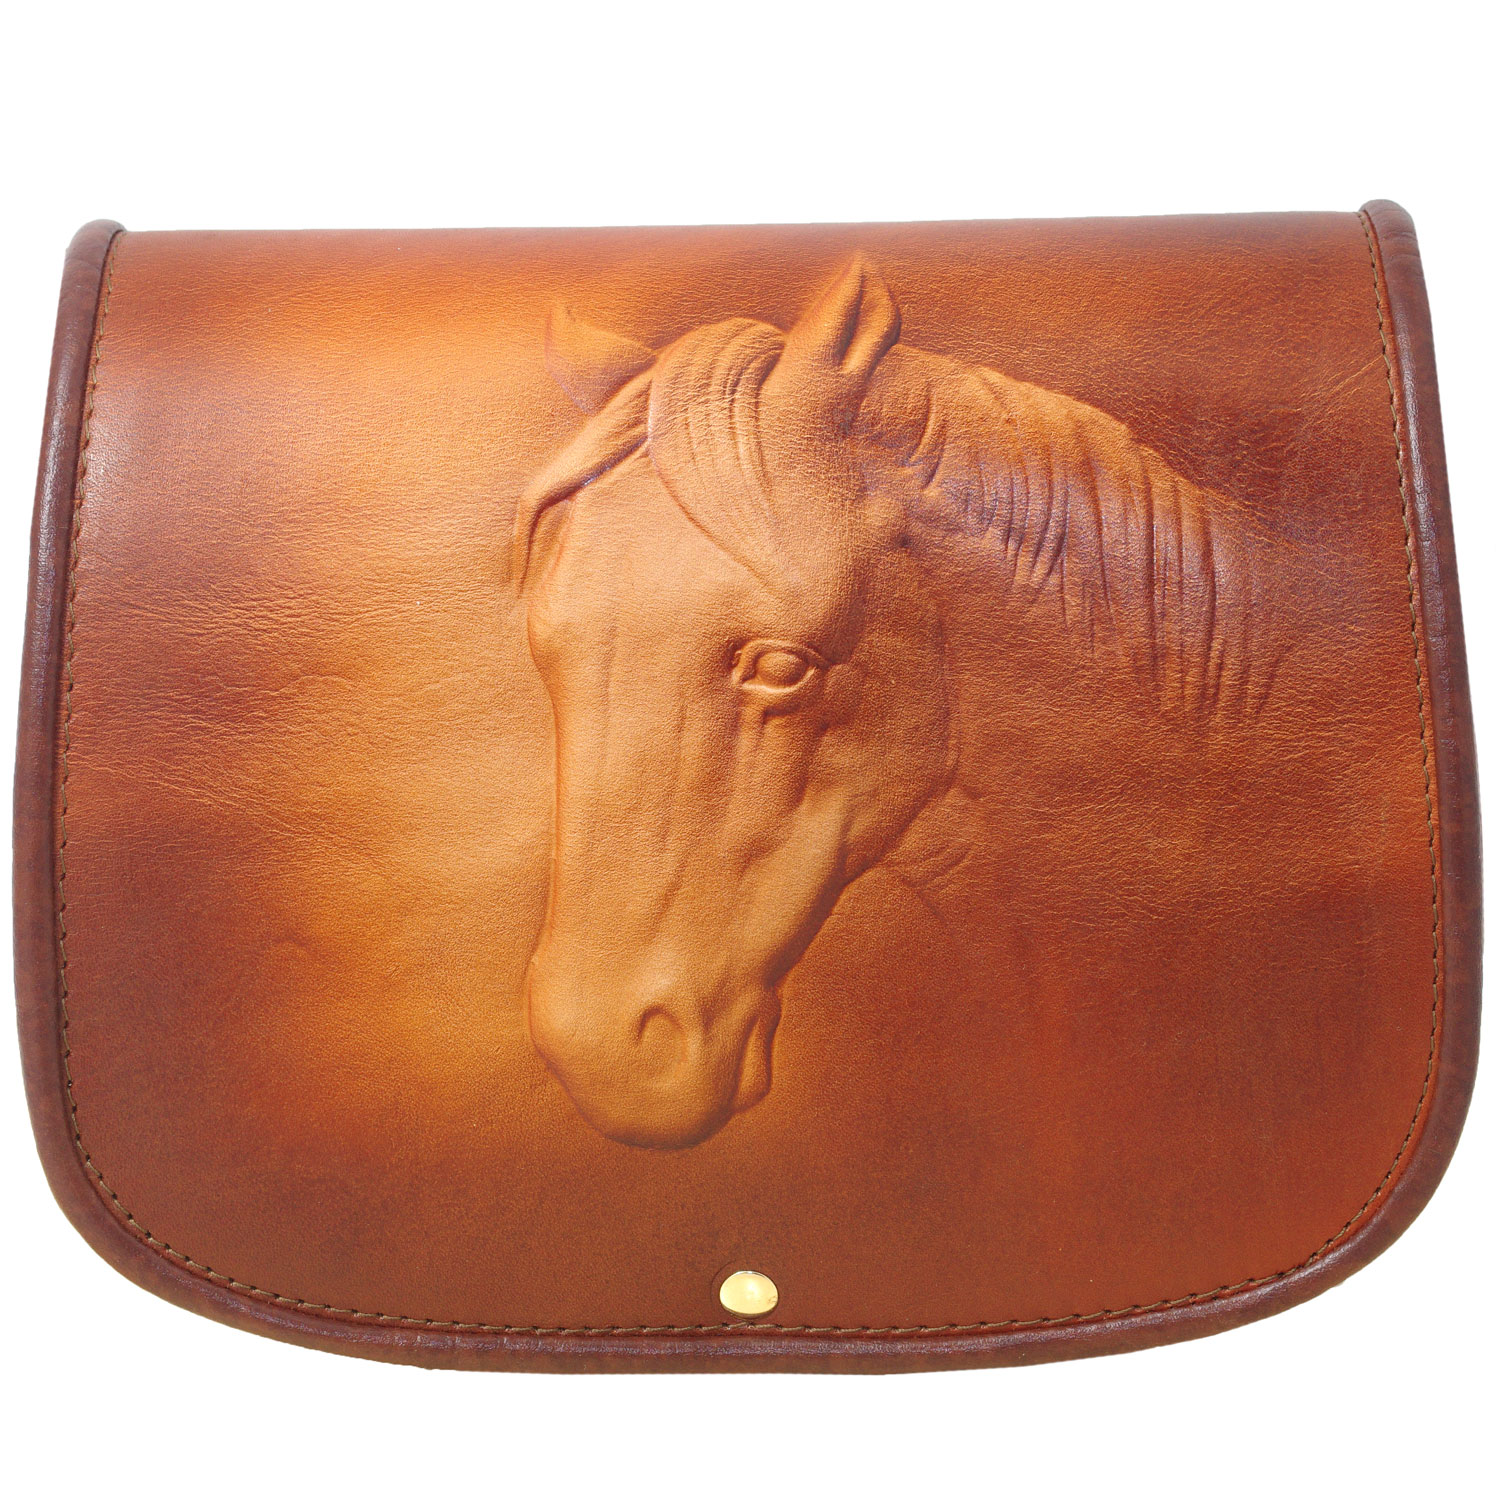 Genuine Leather Bag with Moulded Horse design for women